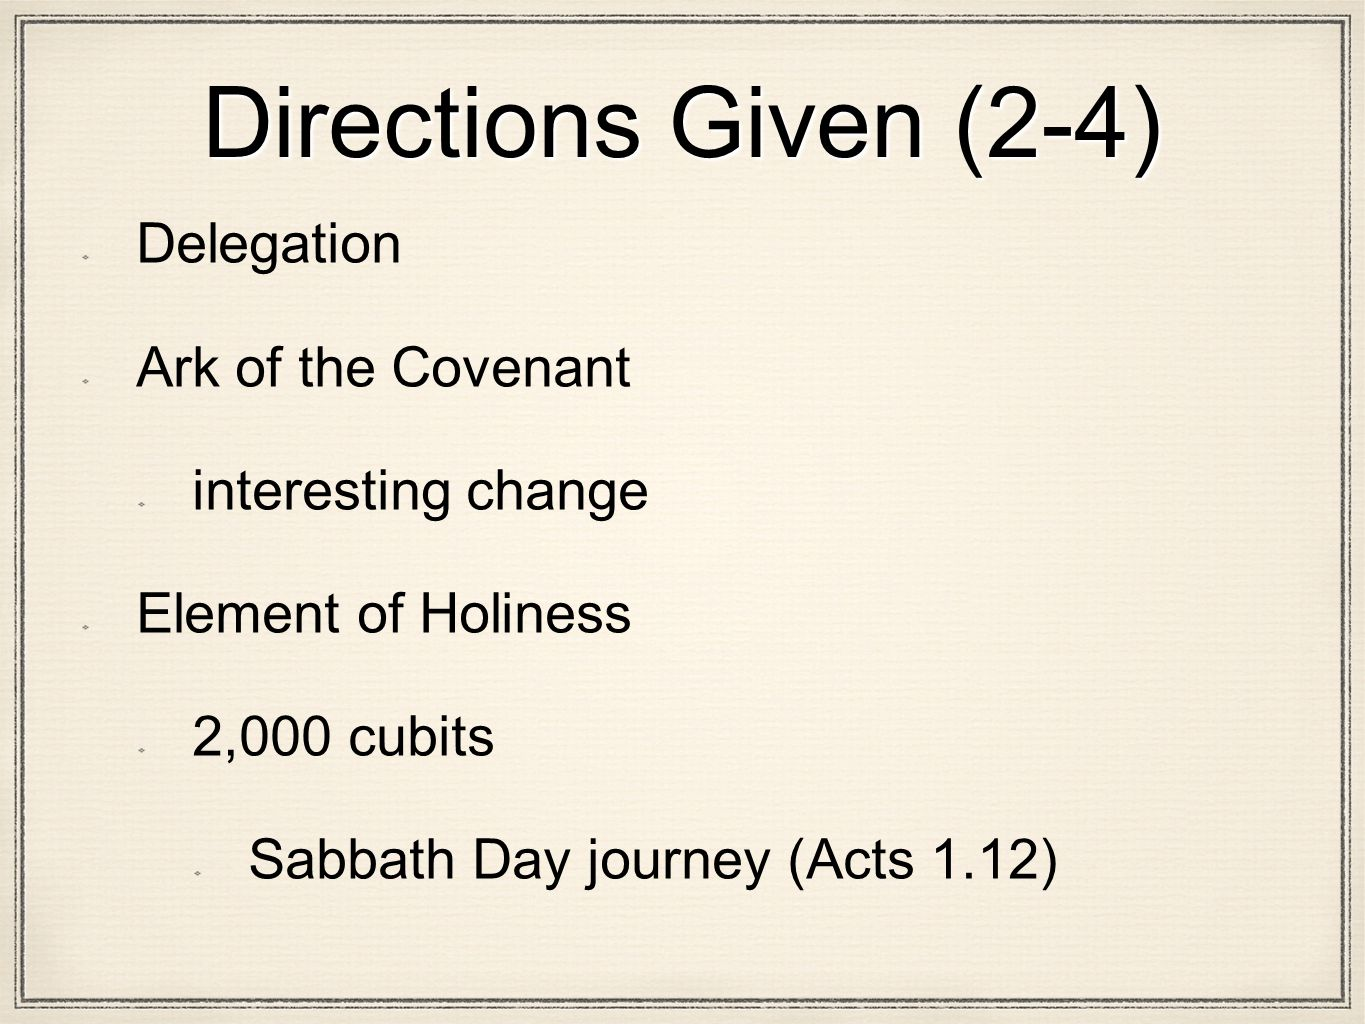 Directions Given (2-4) Delegation Ark of the Covenant interesting change Element of Holiness 2,000 cubits Sabbath Day journey (Acts 1.12)